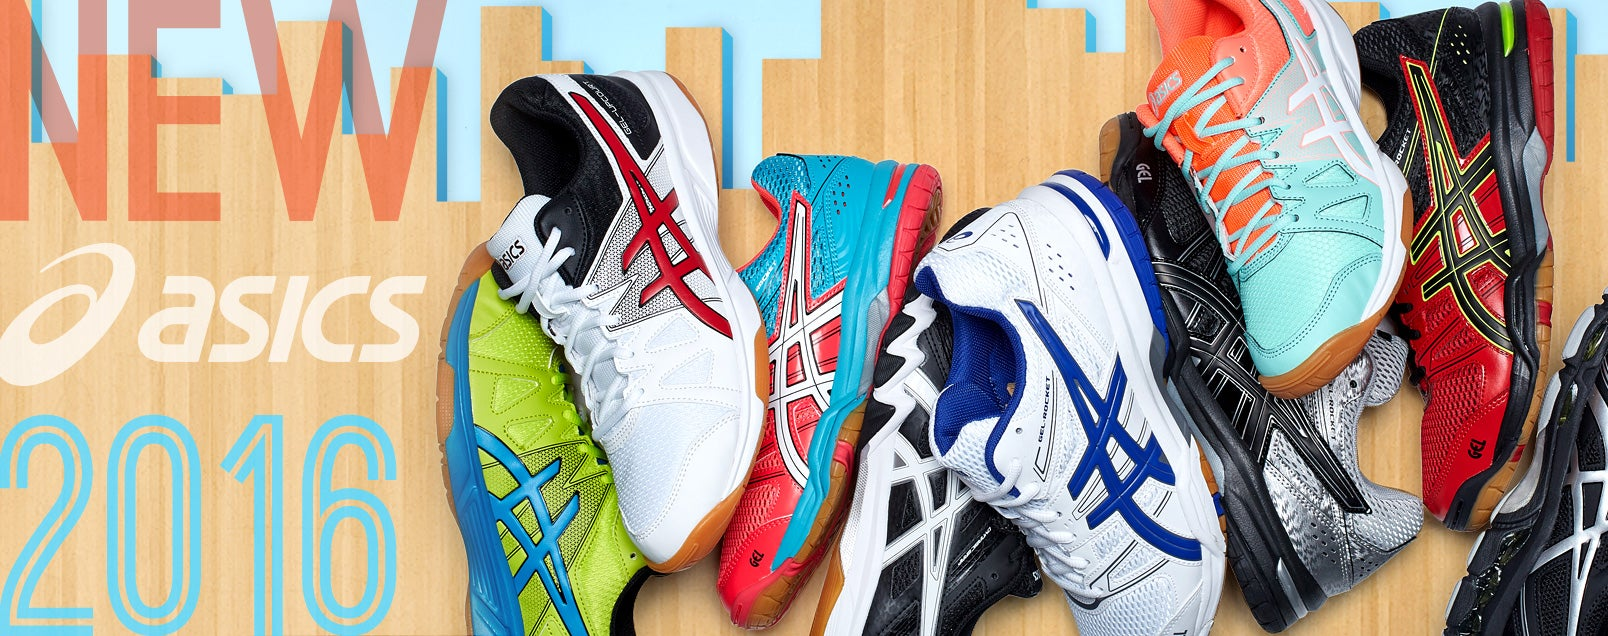 Asics 2016 shoes